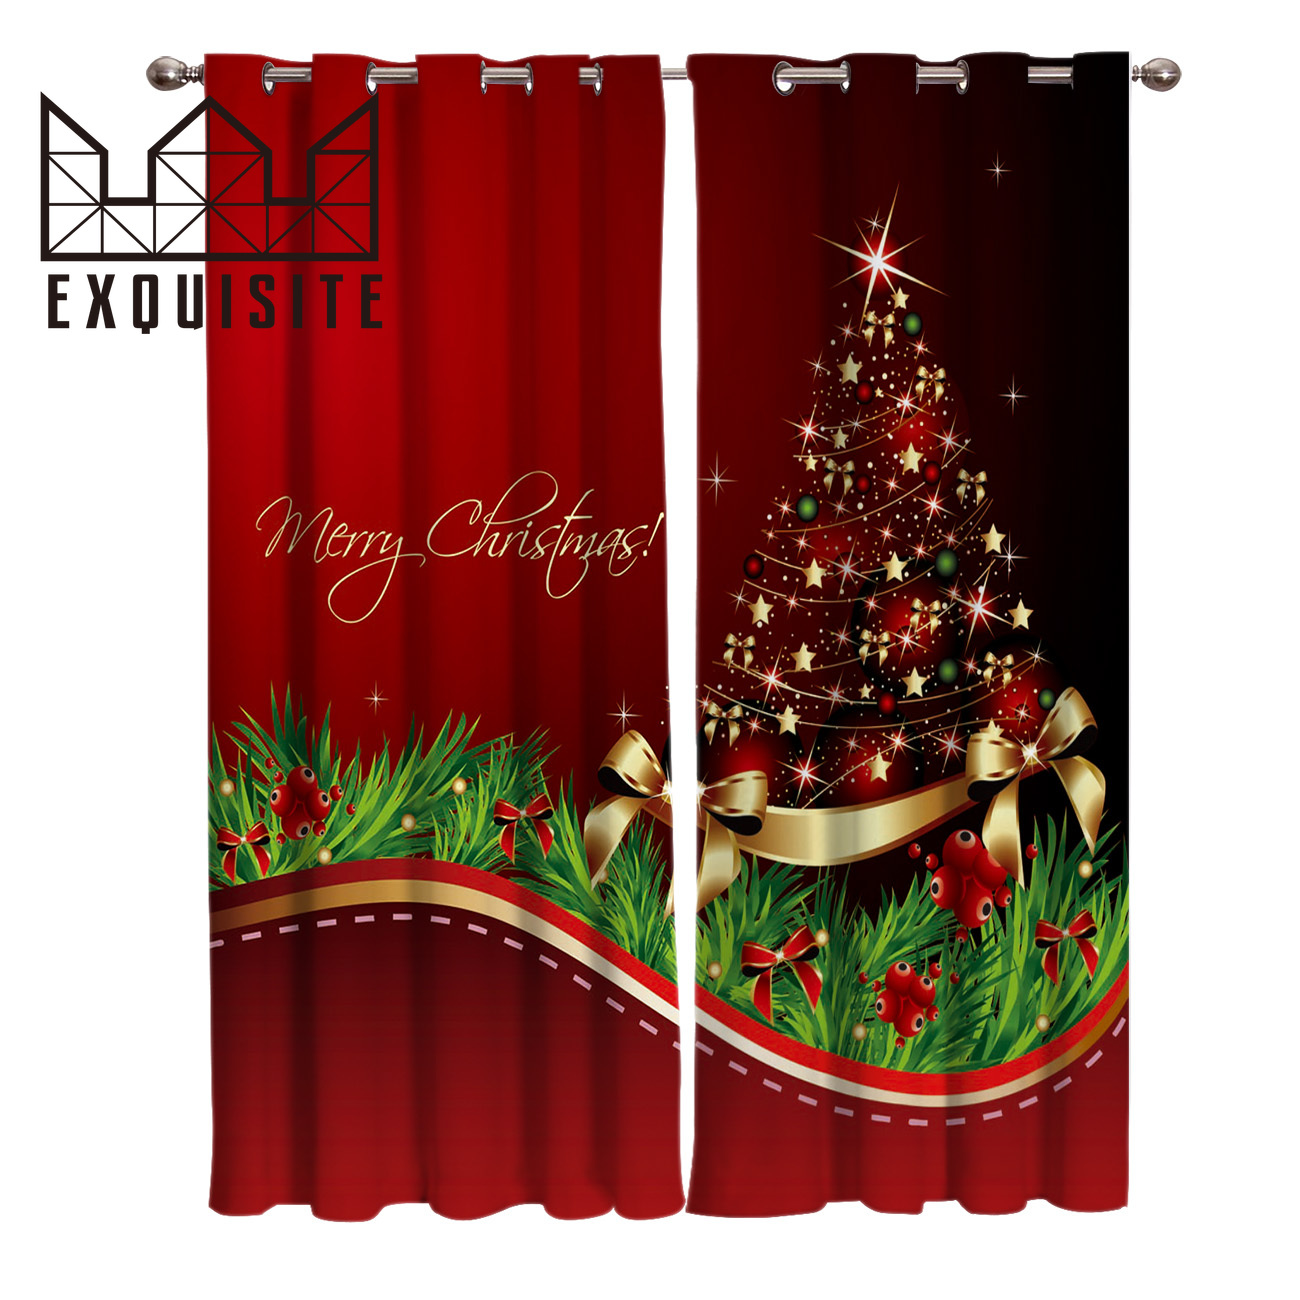 Exquisite House Merry Christmas Tree Window Treatments Curtains Valance Living Room Bedroom Kitchen Indoor Decor Swag Curtain Curtains Aliexpress